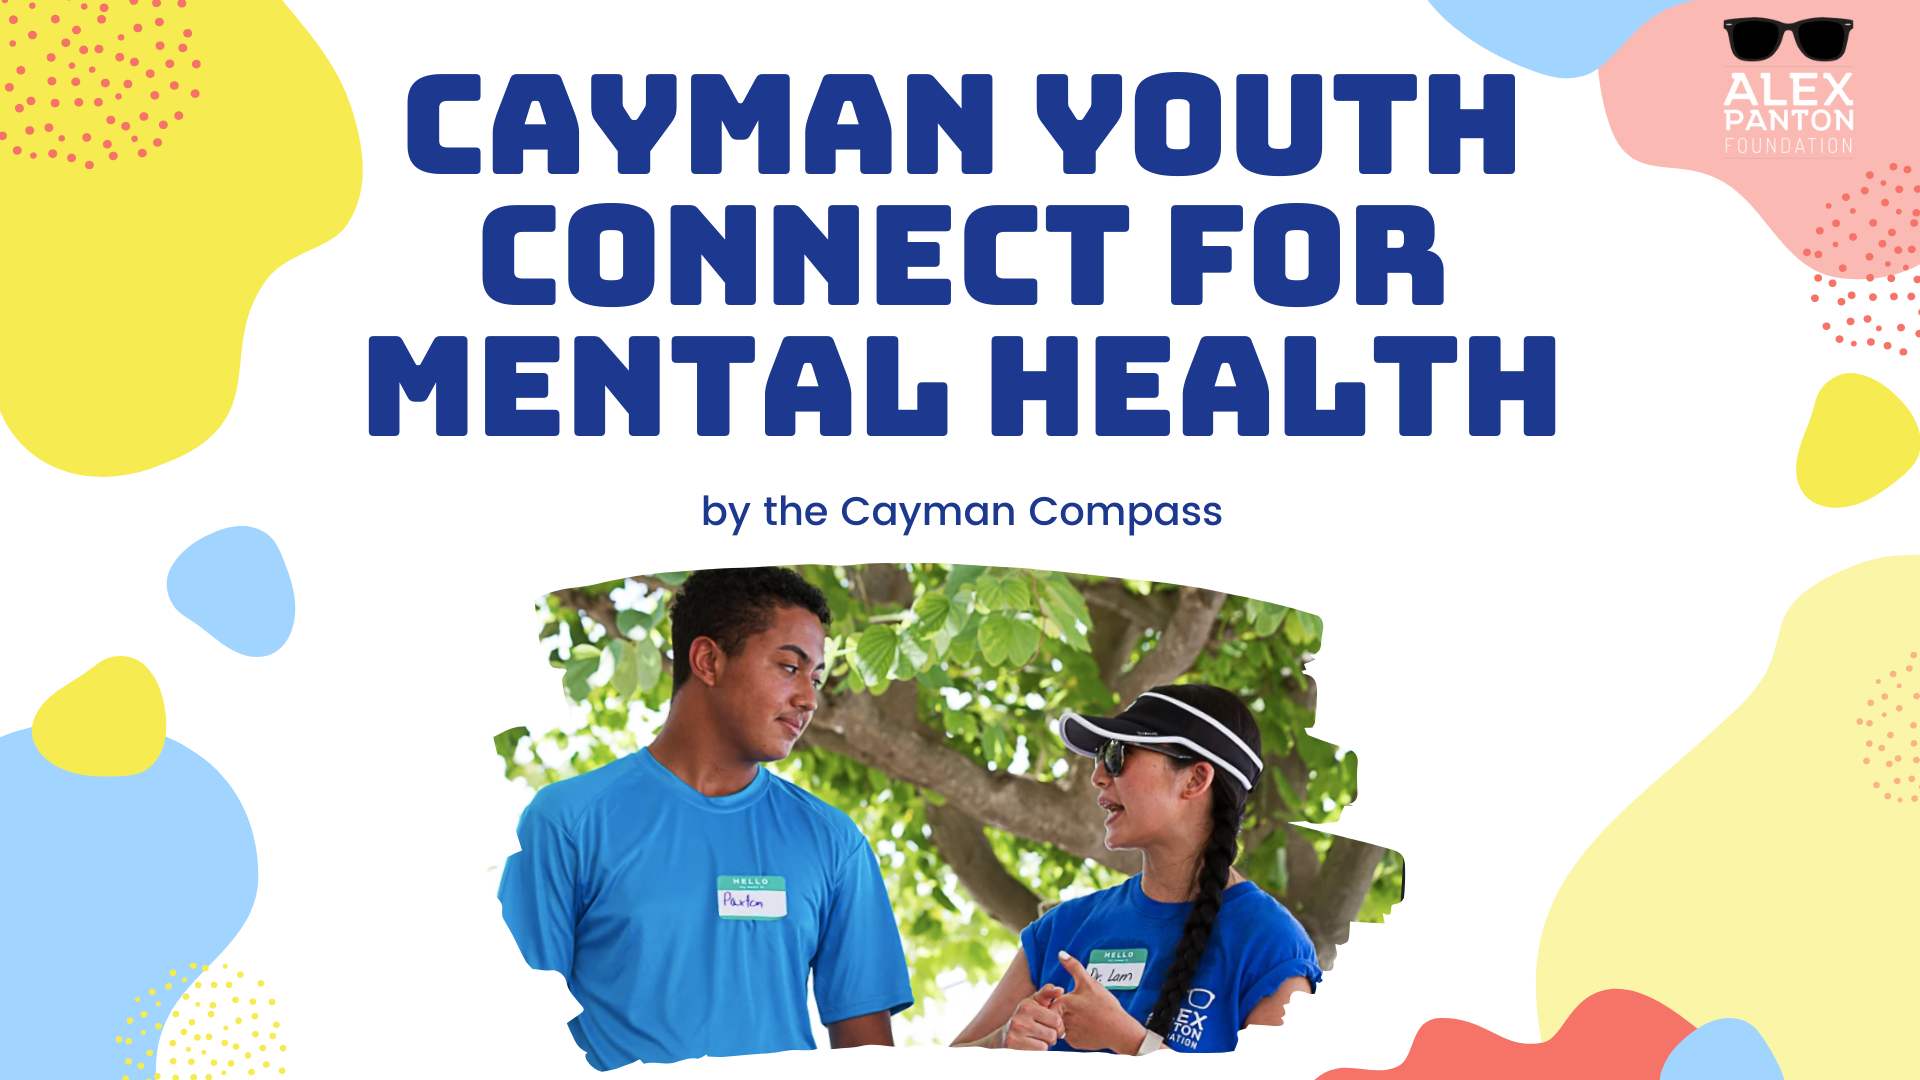 Cayman Youth Connect for Mental Health by the Cayman Compass